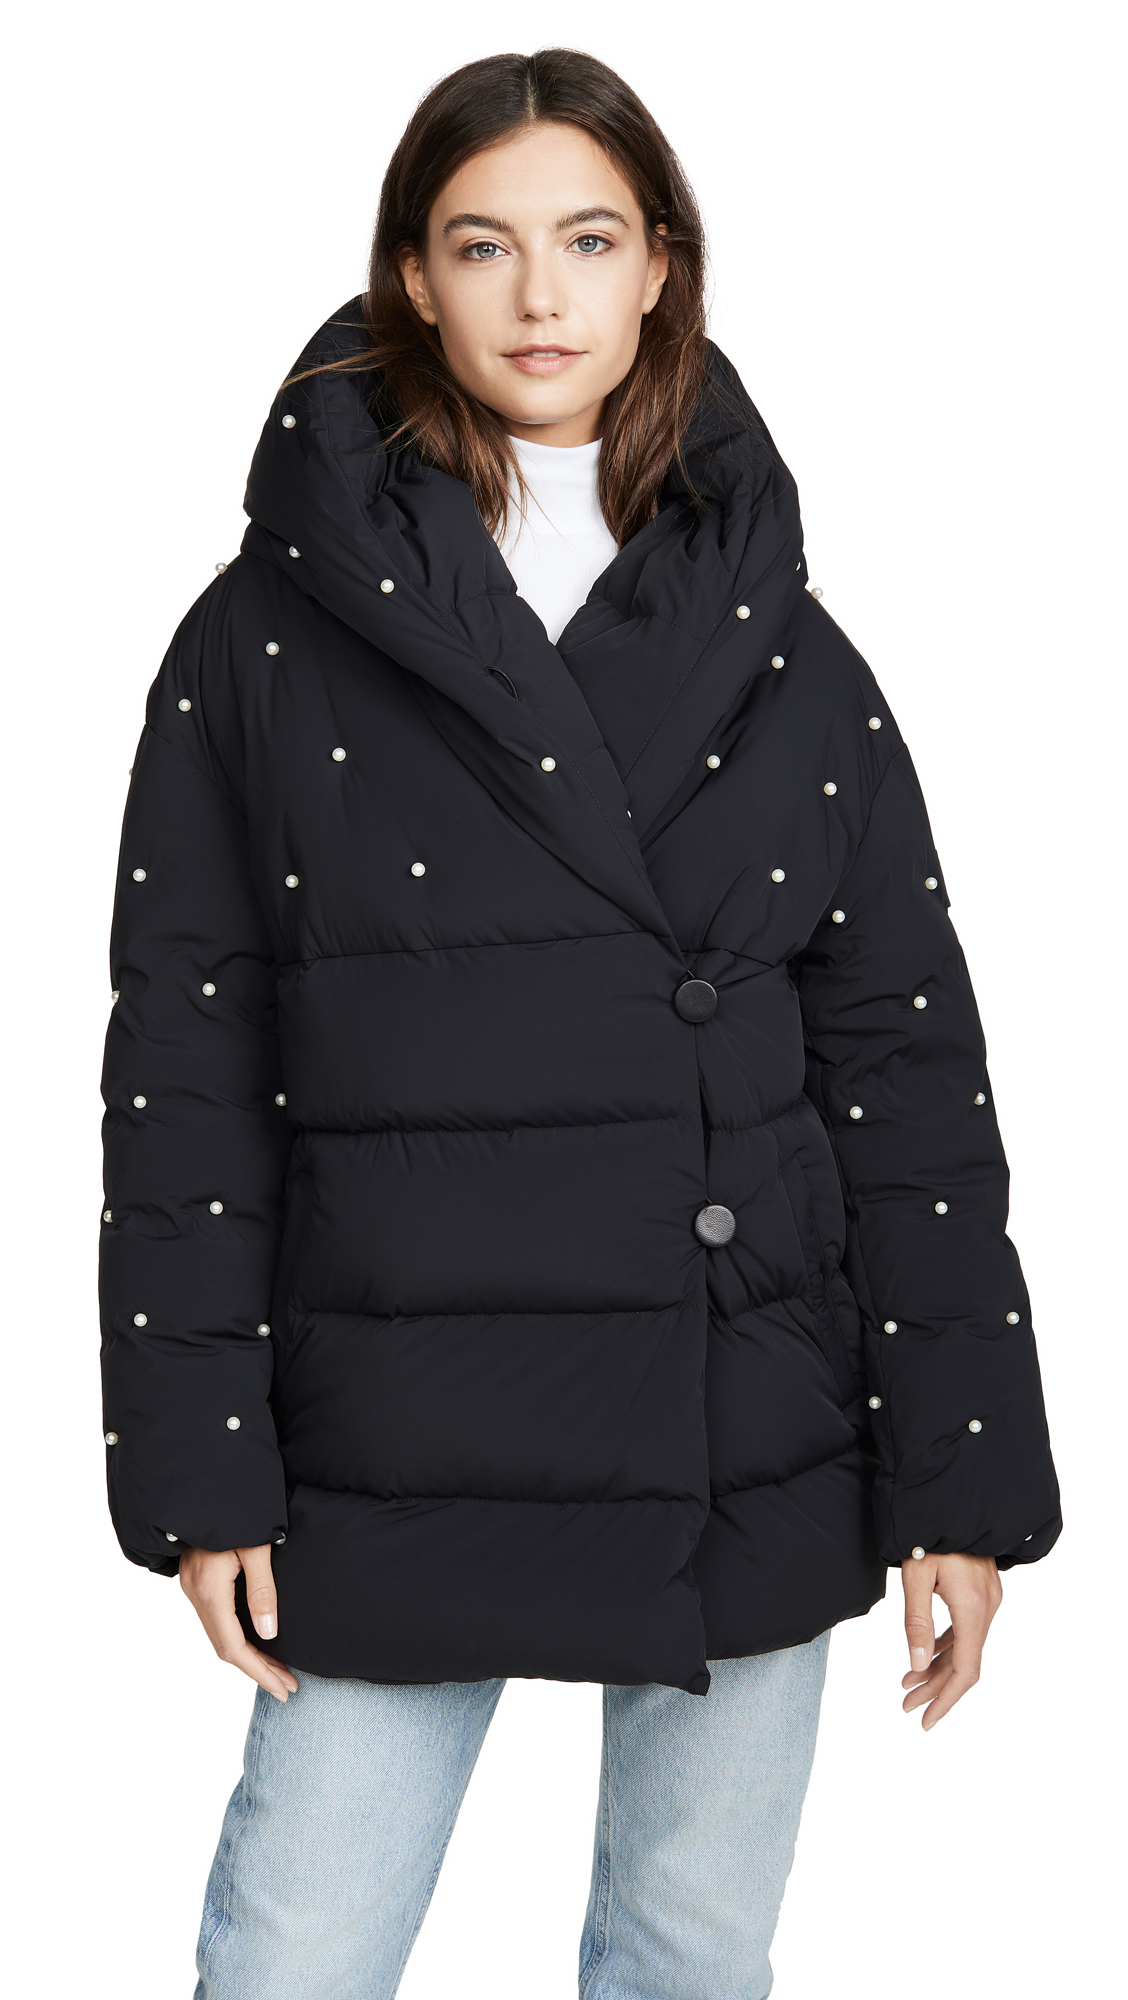 Buy Mackage Aura Jacket online beautiful Mackage Jackets, Coats, Down Jackets